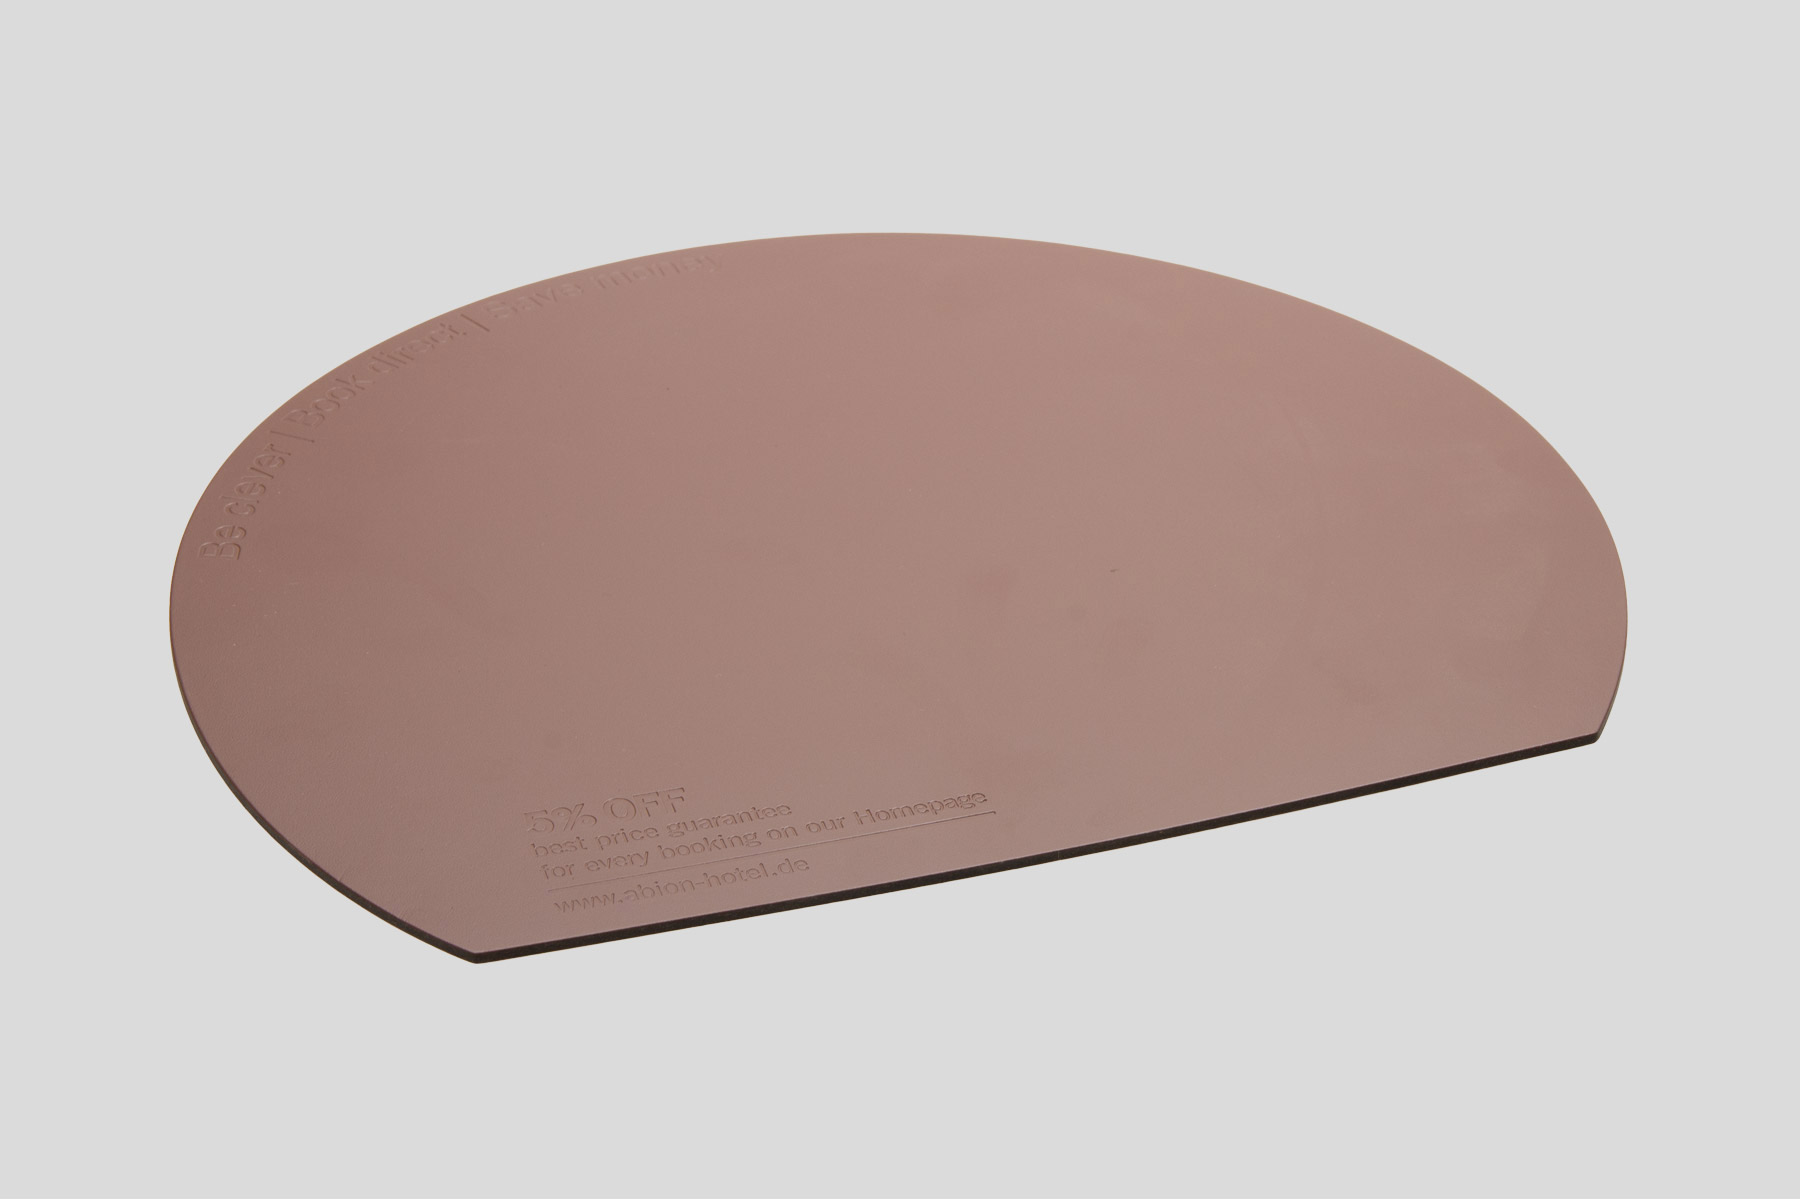 Leather Placemats For Gastronomy Sfp Hospitality Gmbh